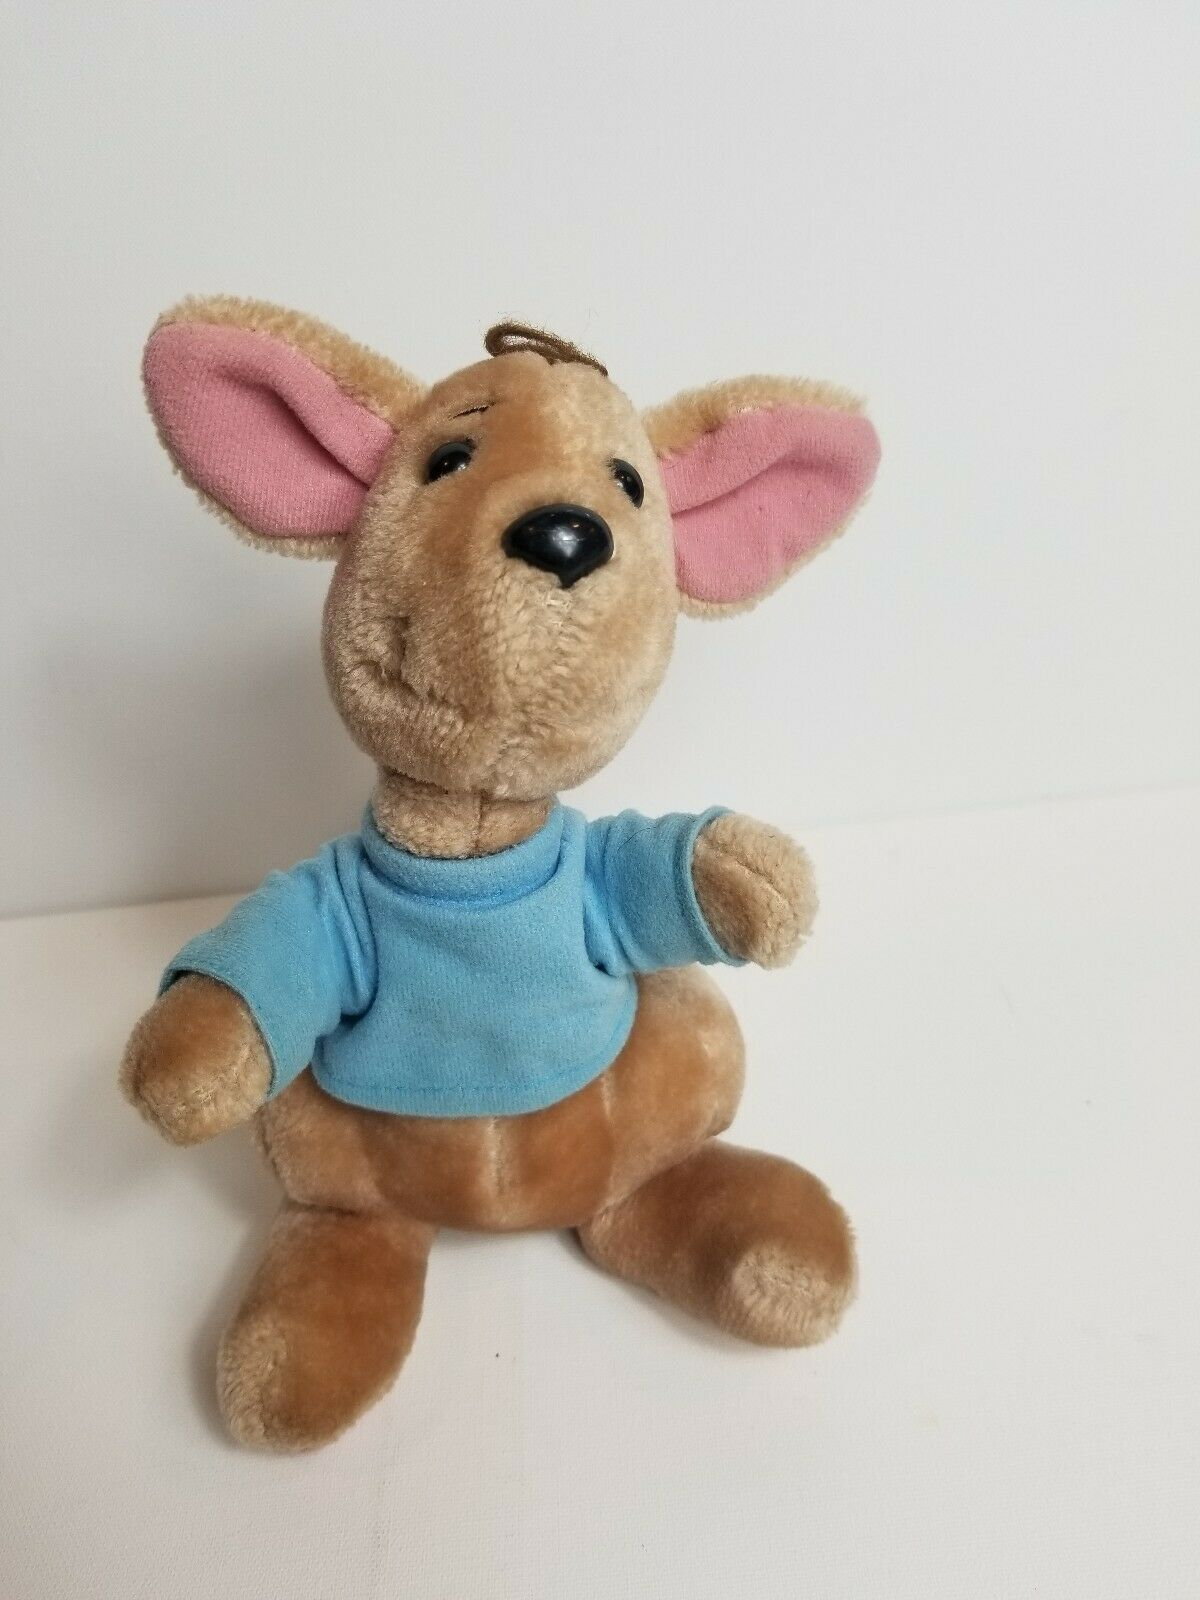 Primary image for Rare Vintage Roo Walt Disney World Plush Toy Stuffed Animal Winnie the Pooh 9.5""